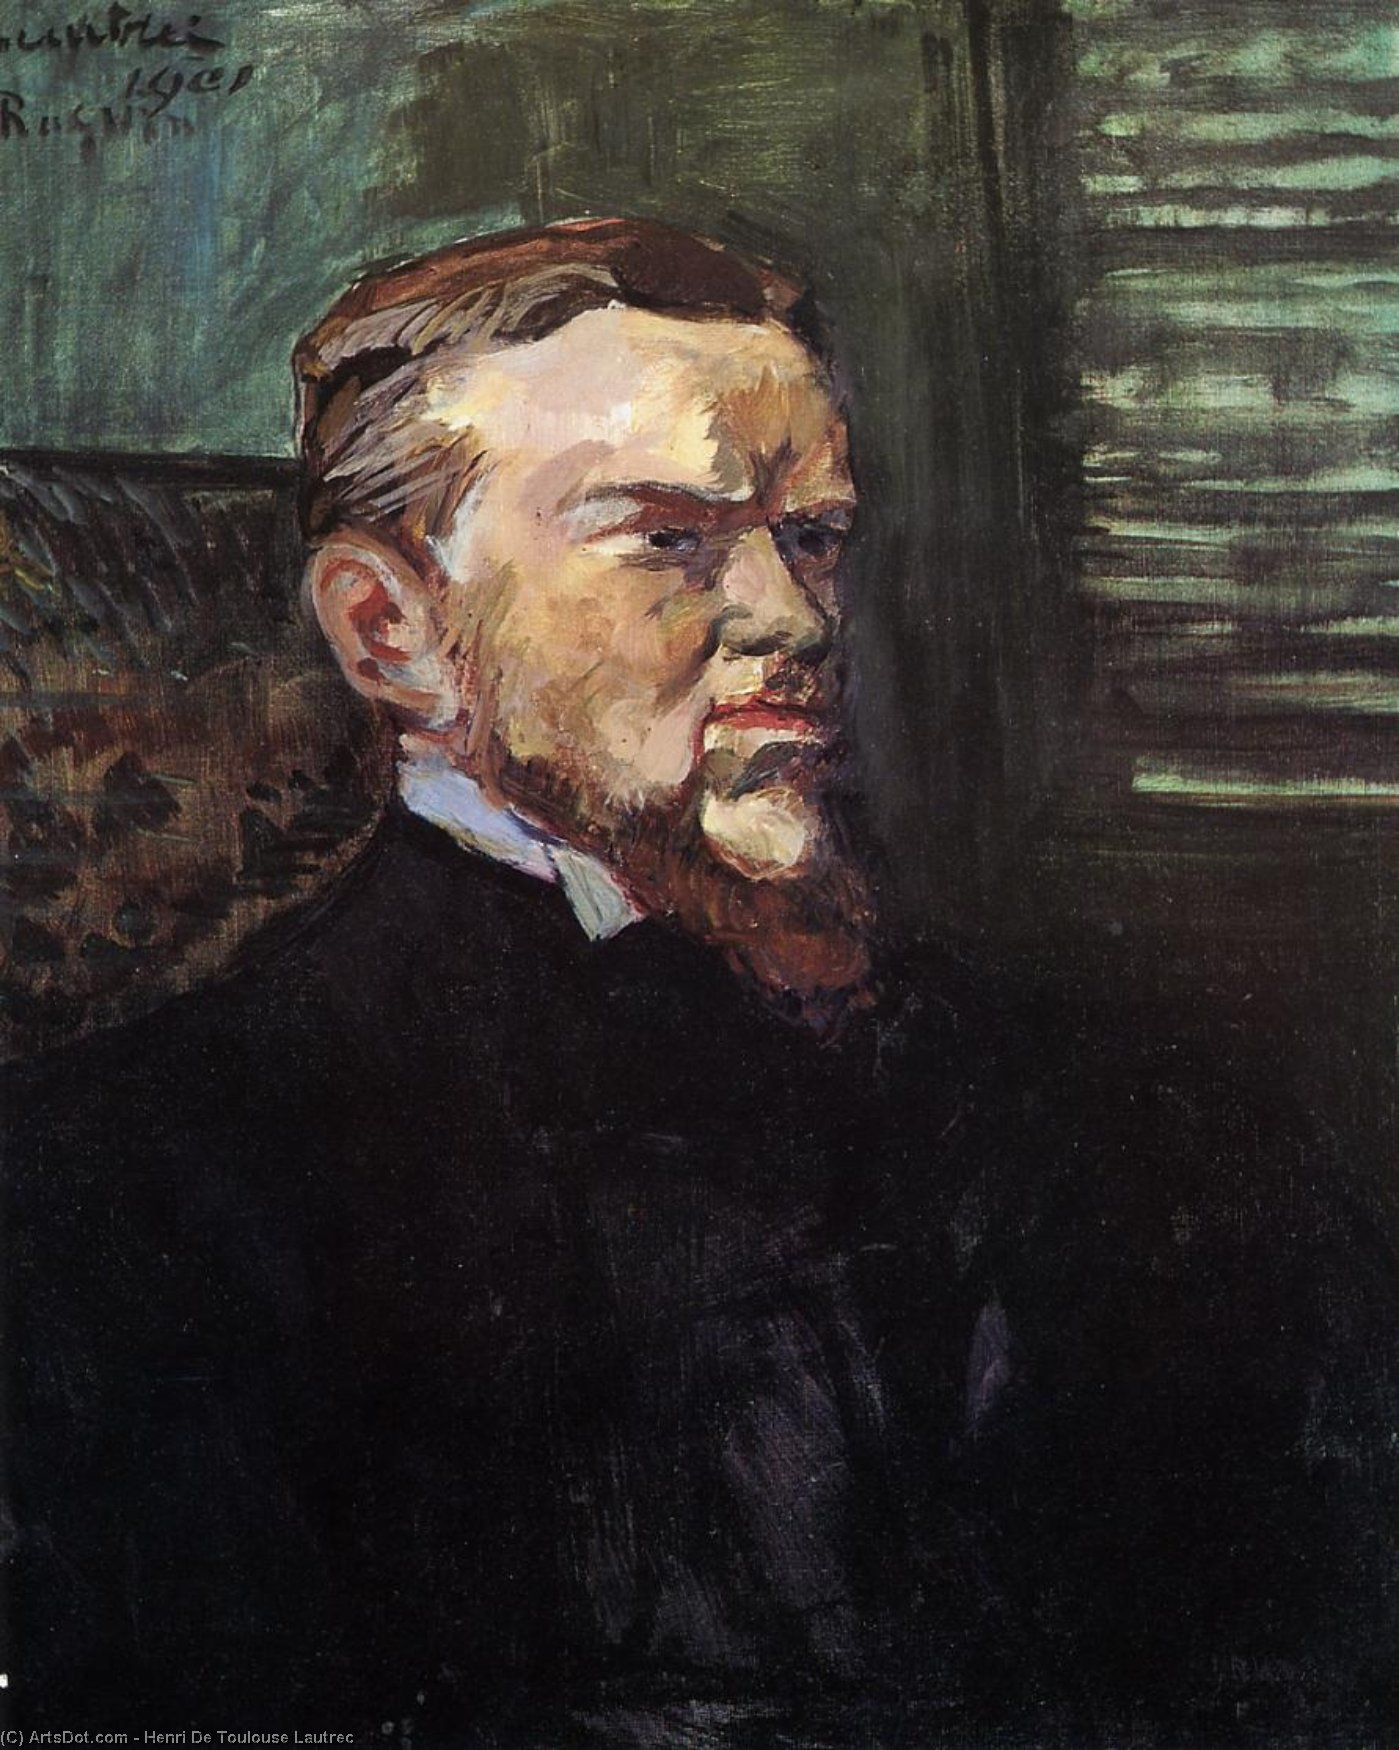 Portrait of Octave Raquin, Oil On Canvas by Henri De Toulouse Lautrec (1864-1901, France)